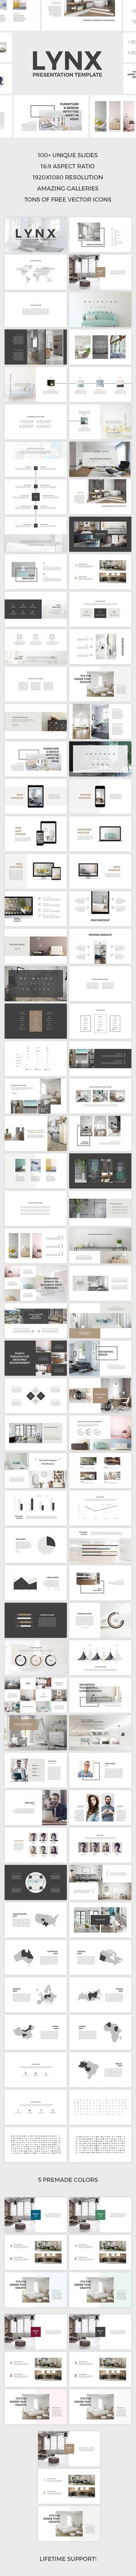 Lynx PowerPoint Template (PowerPoint Templates)                                                                                                                                                                                 More